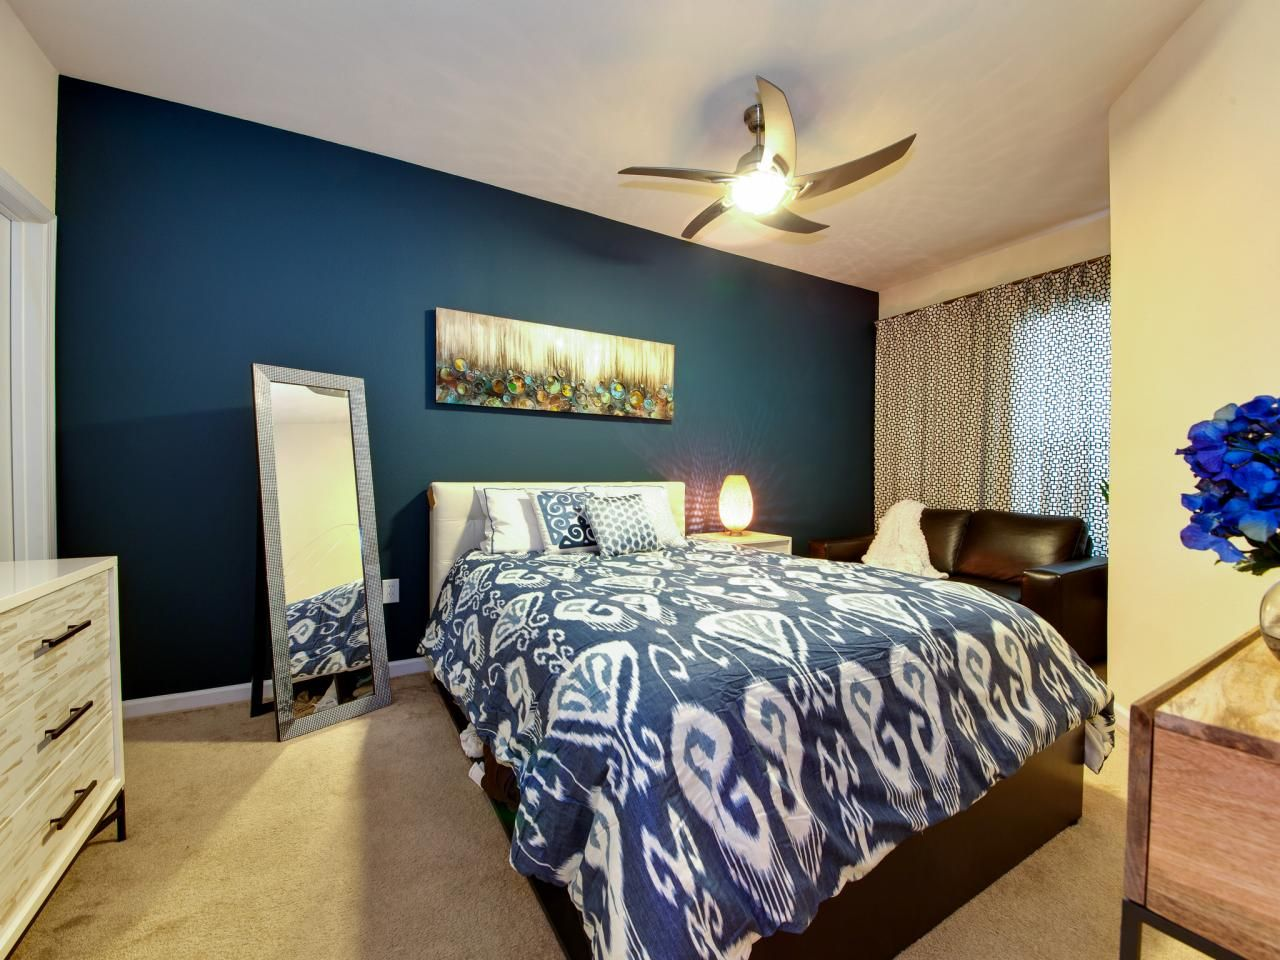 a striking peacock blue accent wall and bold ikat bedding form a